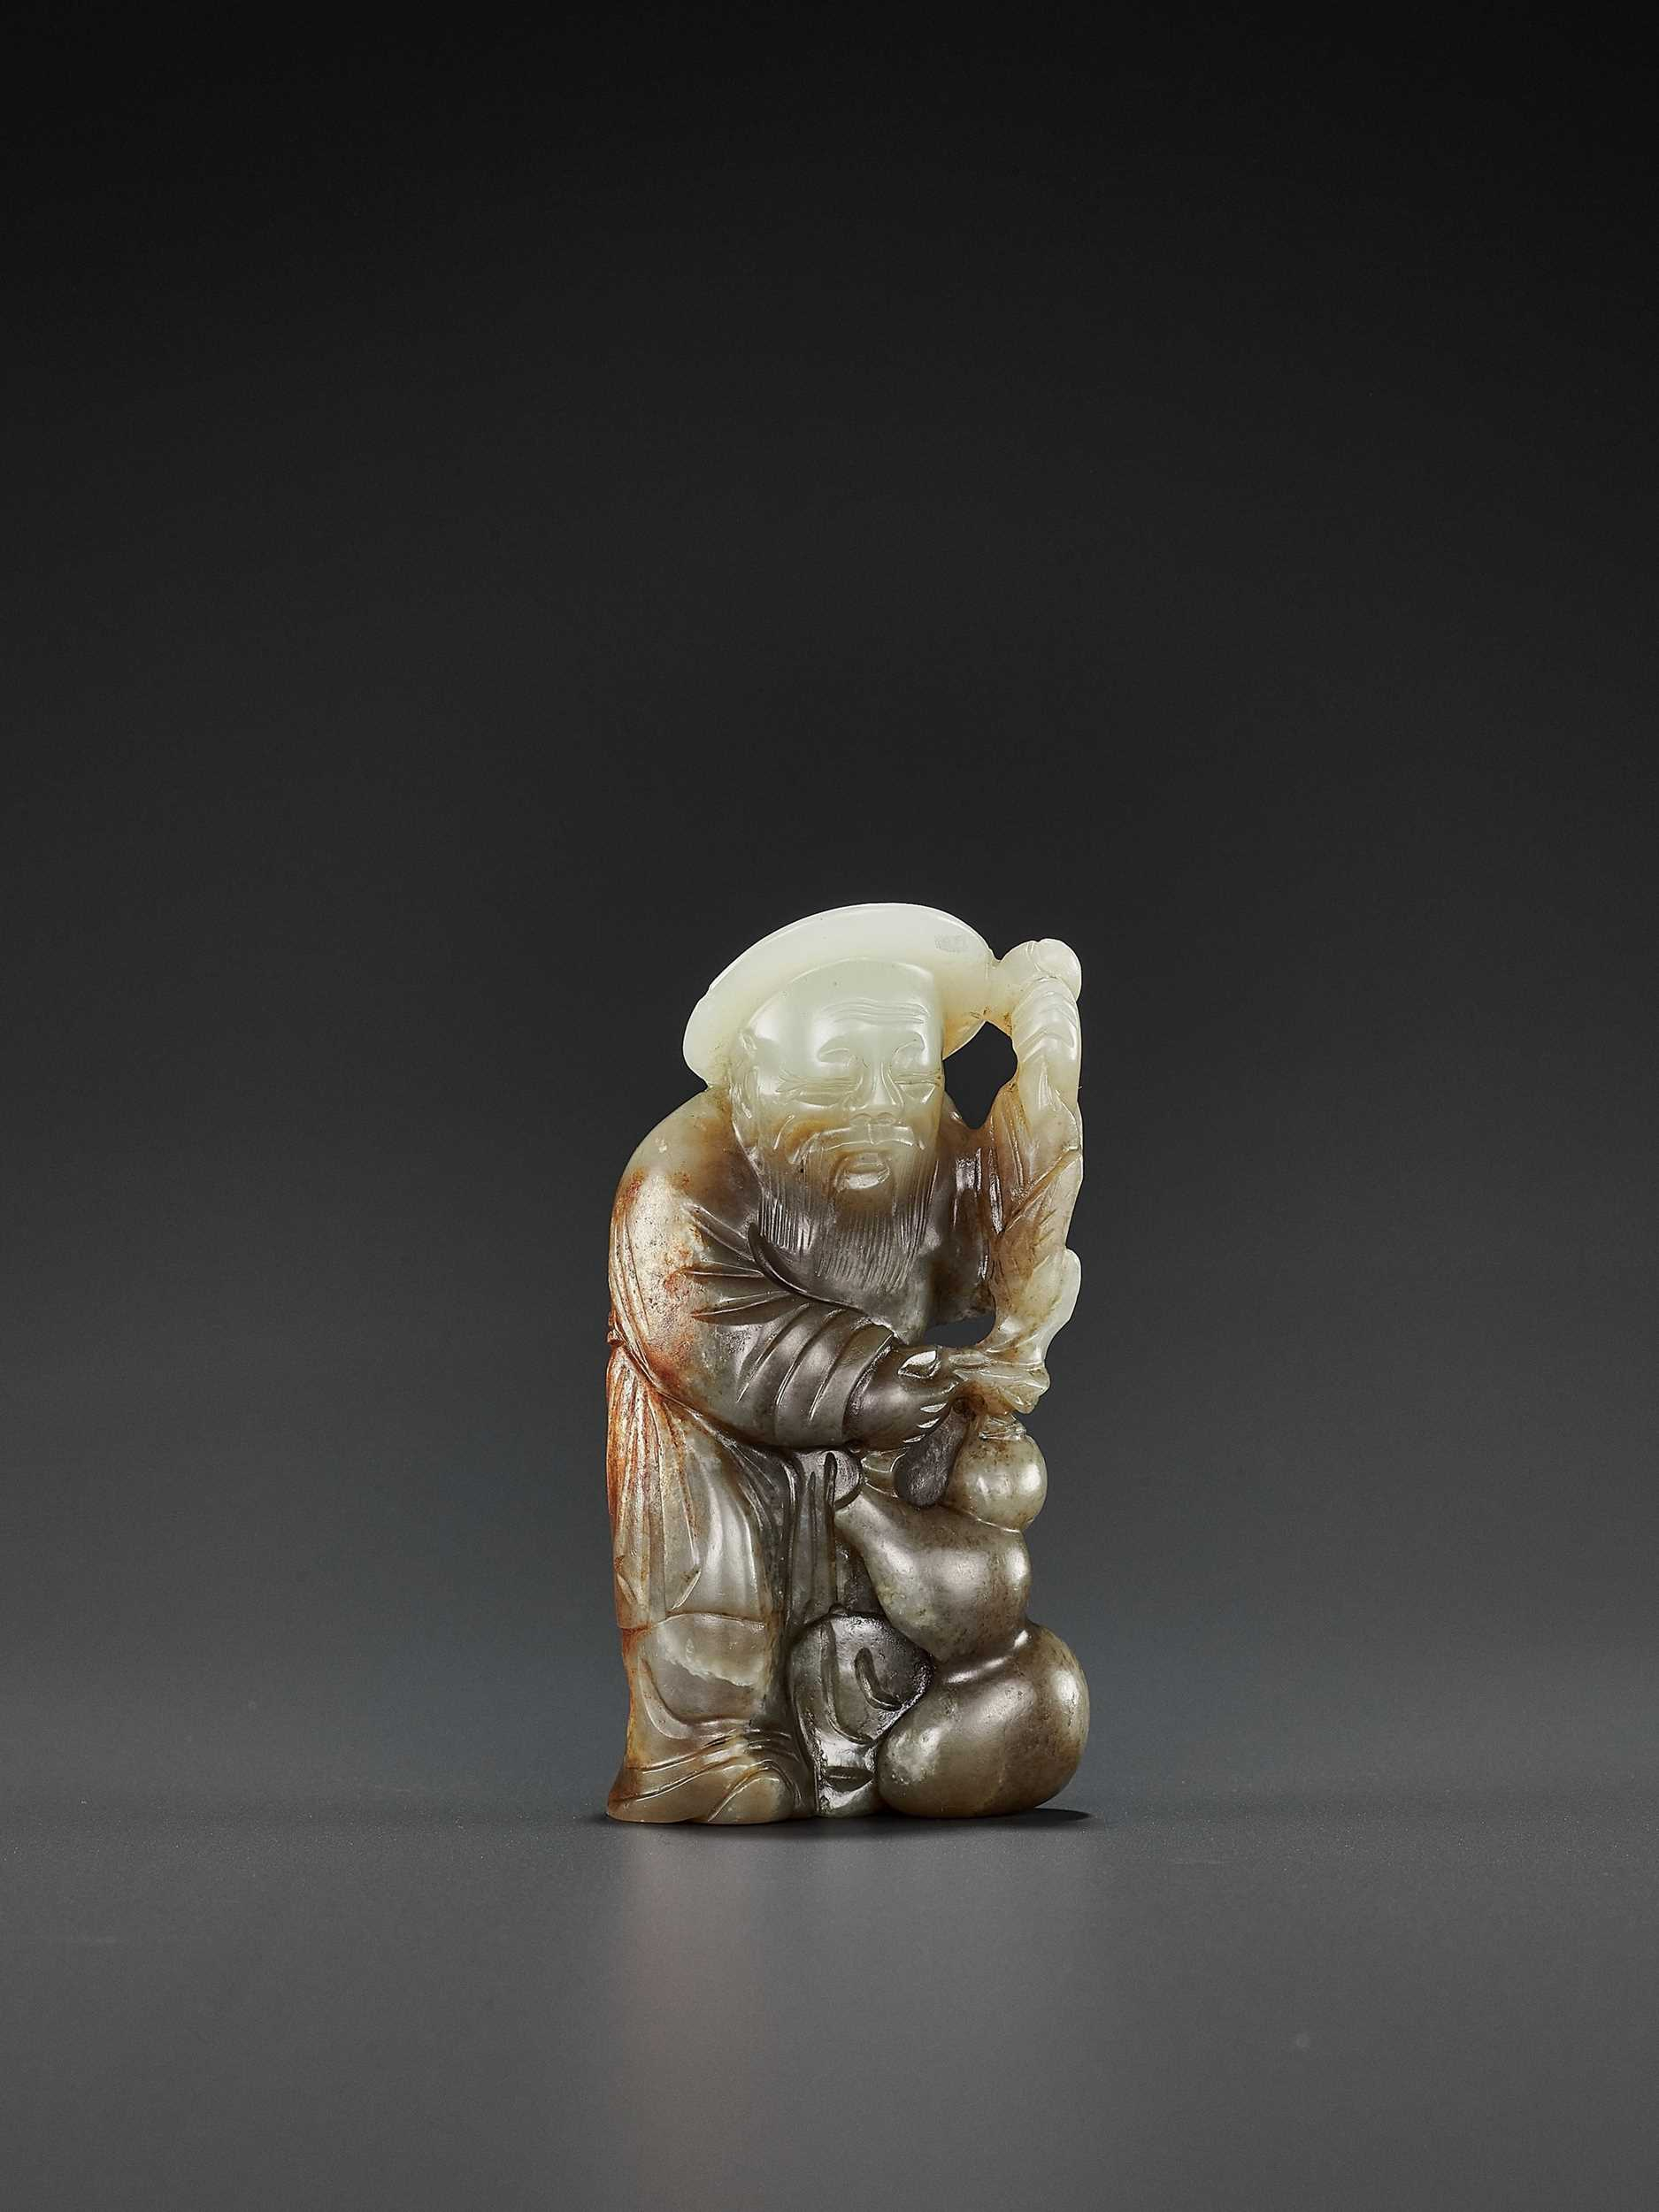 Lot 66 - A PALE CELADON, GRAY AND RUSSET JADE FIGURE OF DONGFANG SHUO, QING DYNASTY